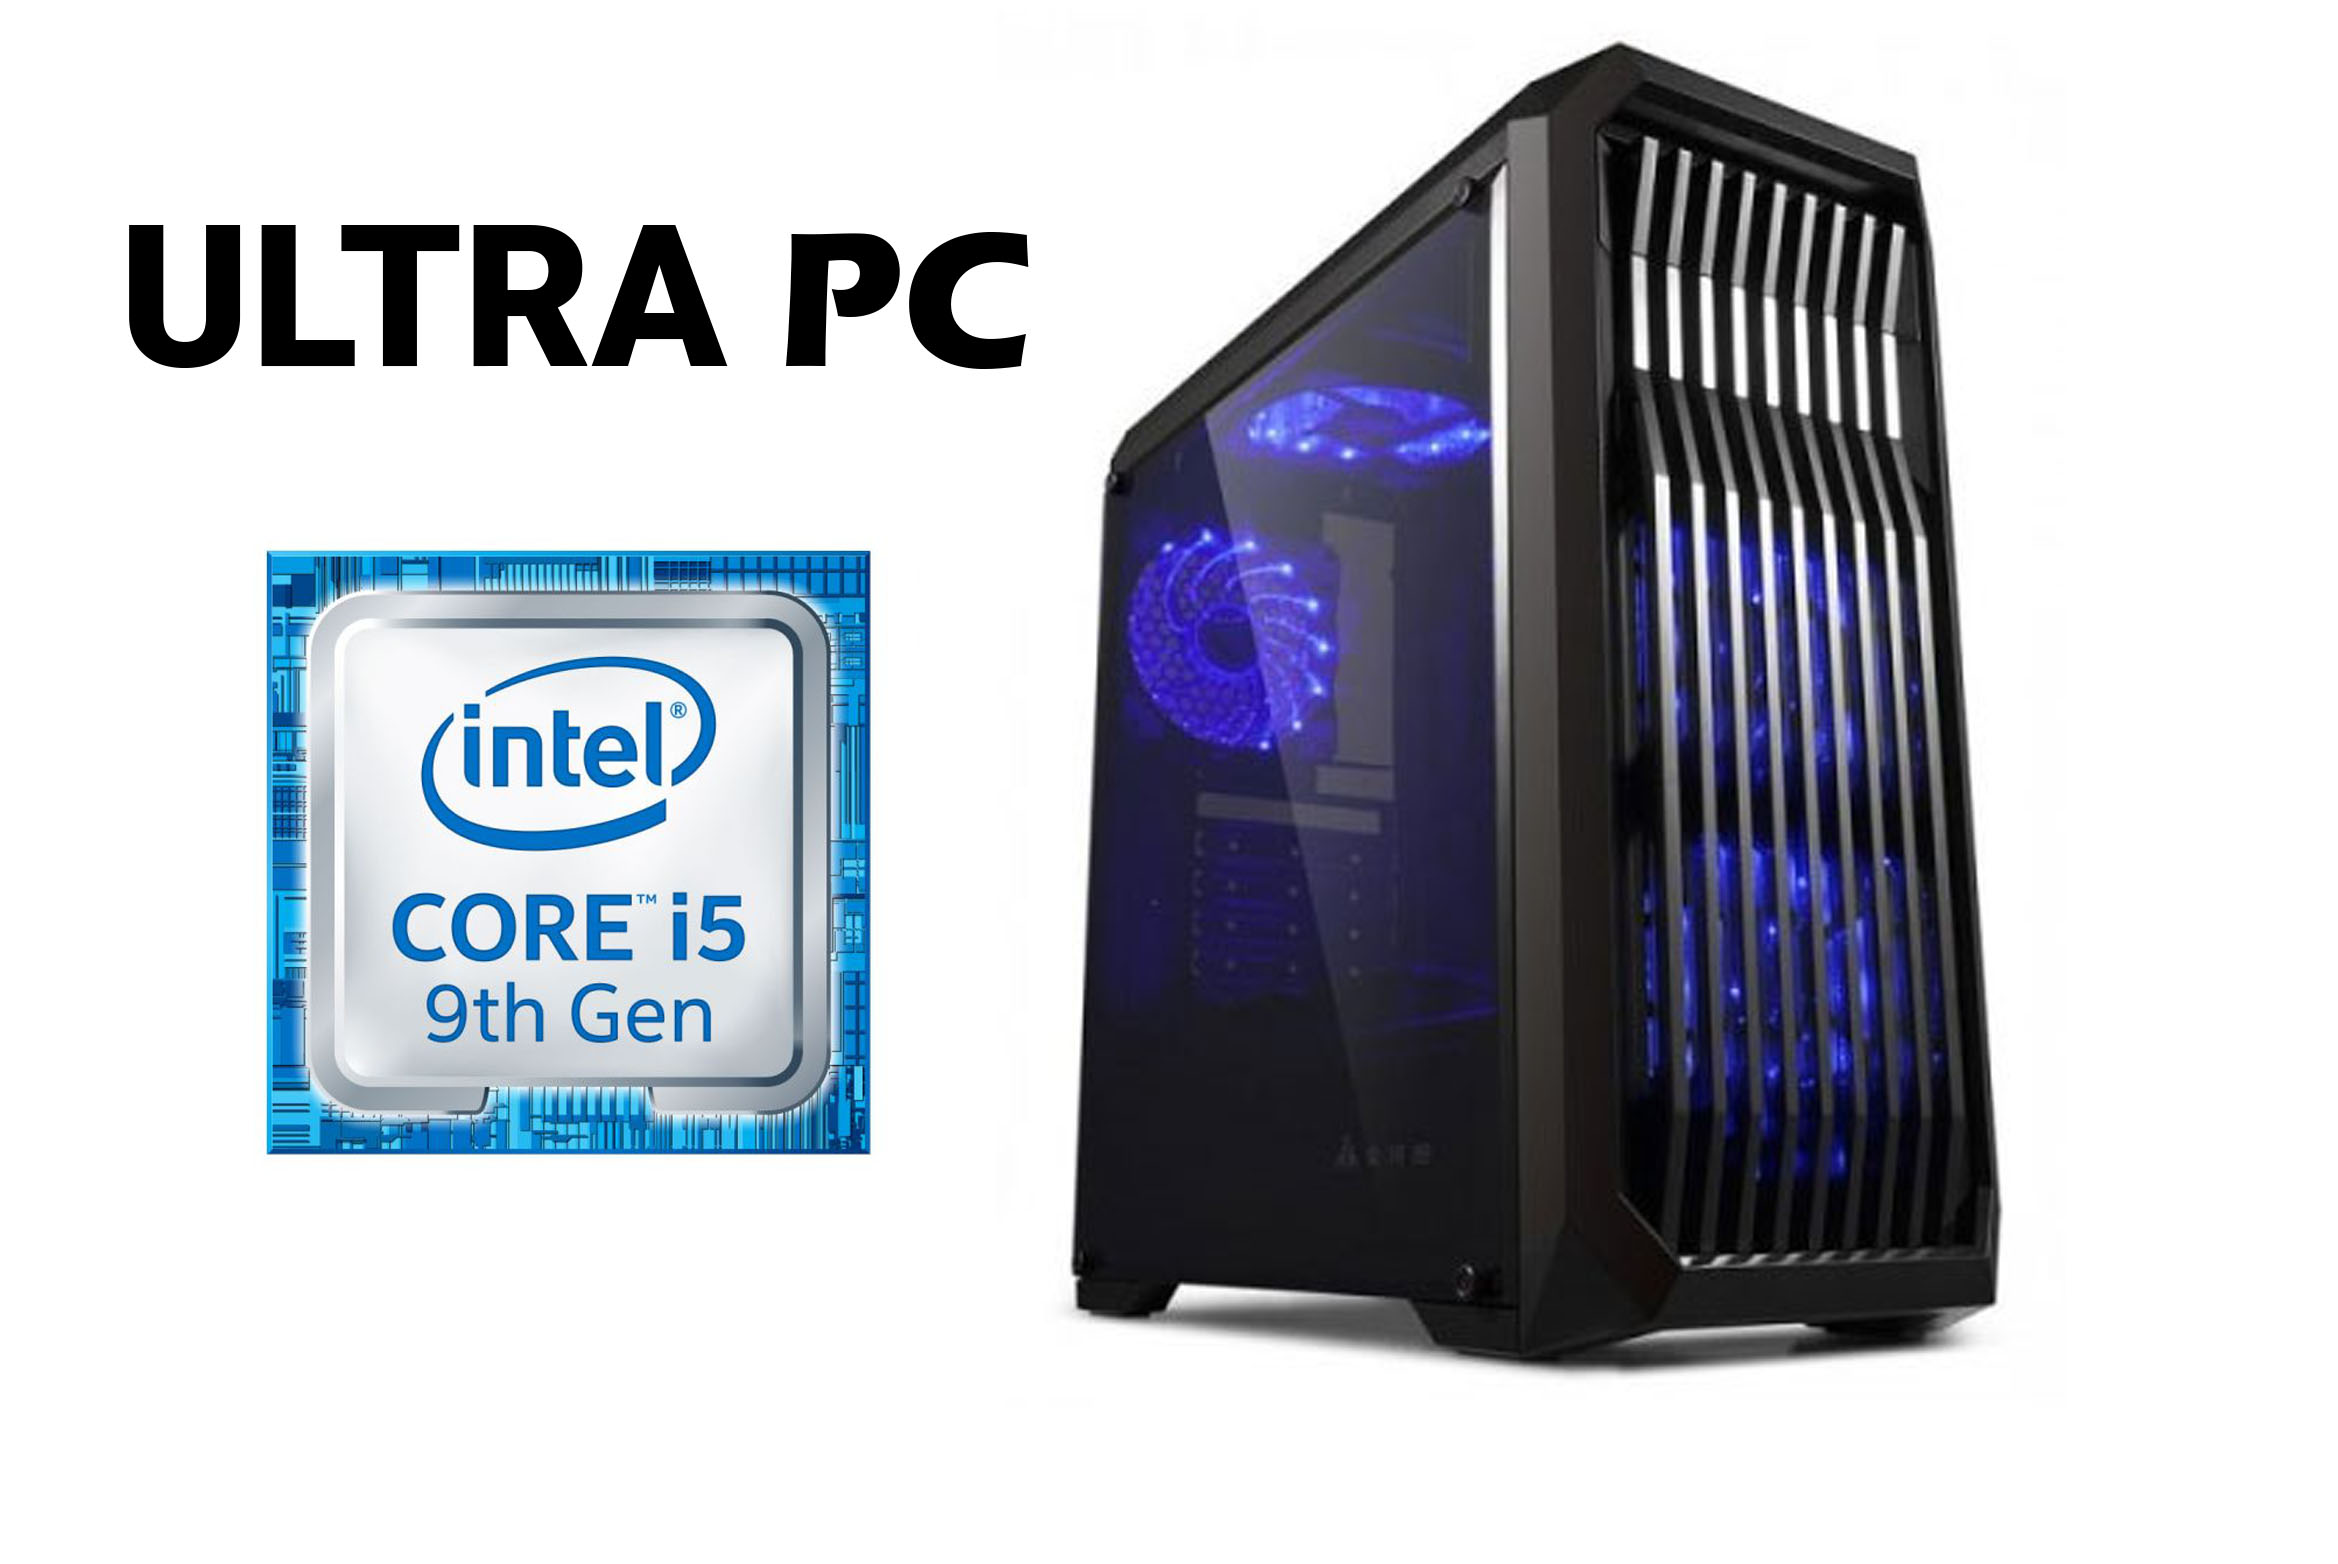 ULTRA PC Intel Core i5-9400F ASUS PRIME B365M-K SSD 240 GB 16 GB 1660 Ti GAMING X 6G